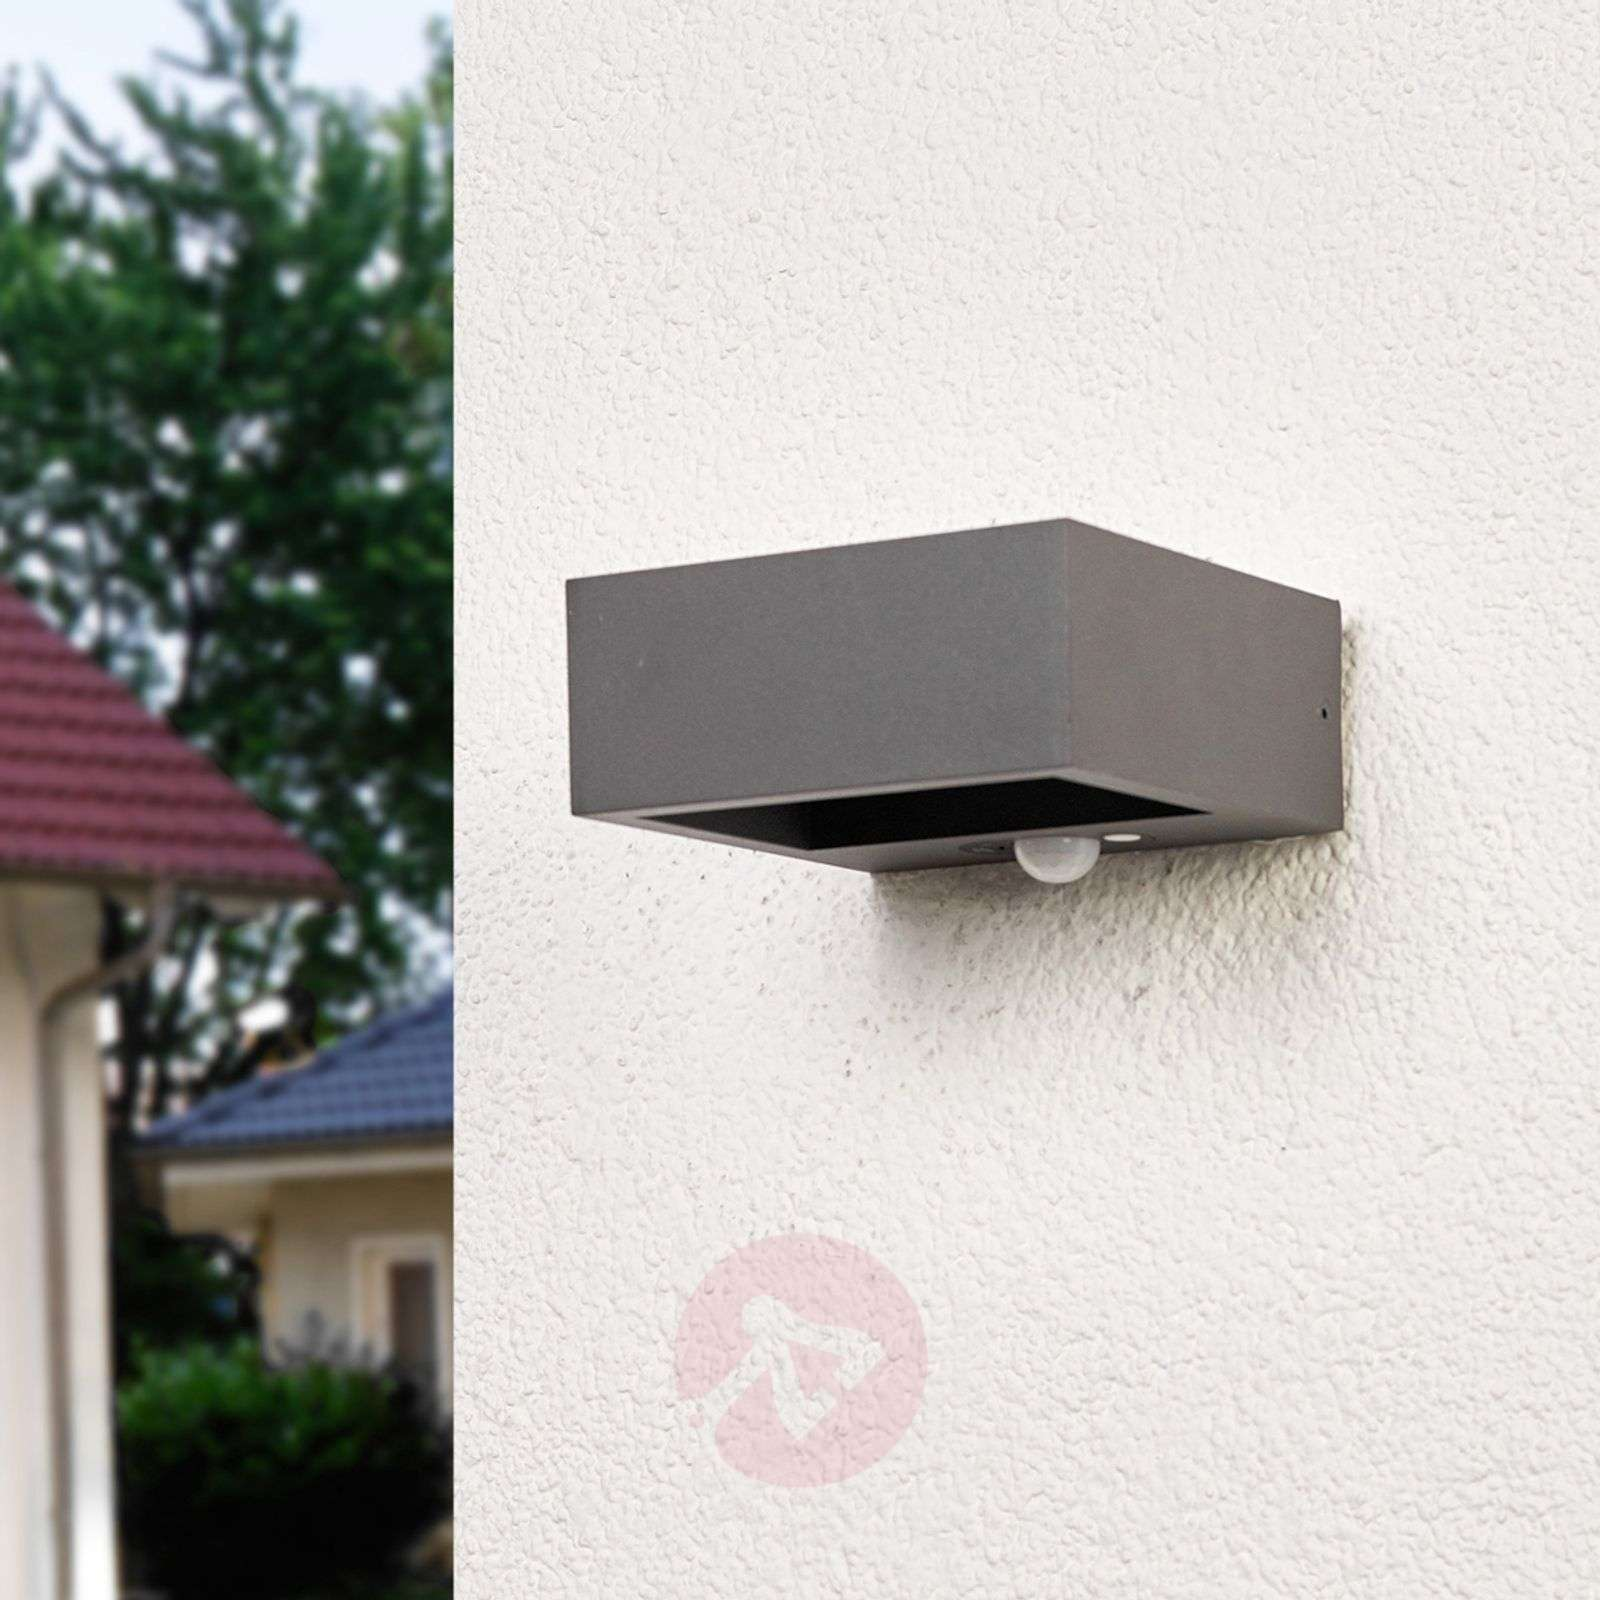 Wall Mounted Solar Porch Lights : Solar-powered LED outdoor wall light Mahra, sensor Lights.co.uk